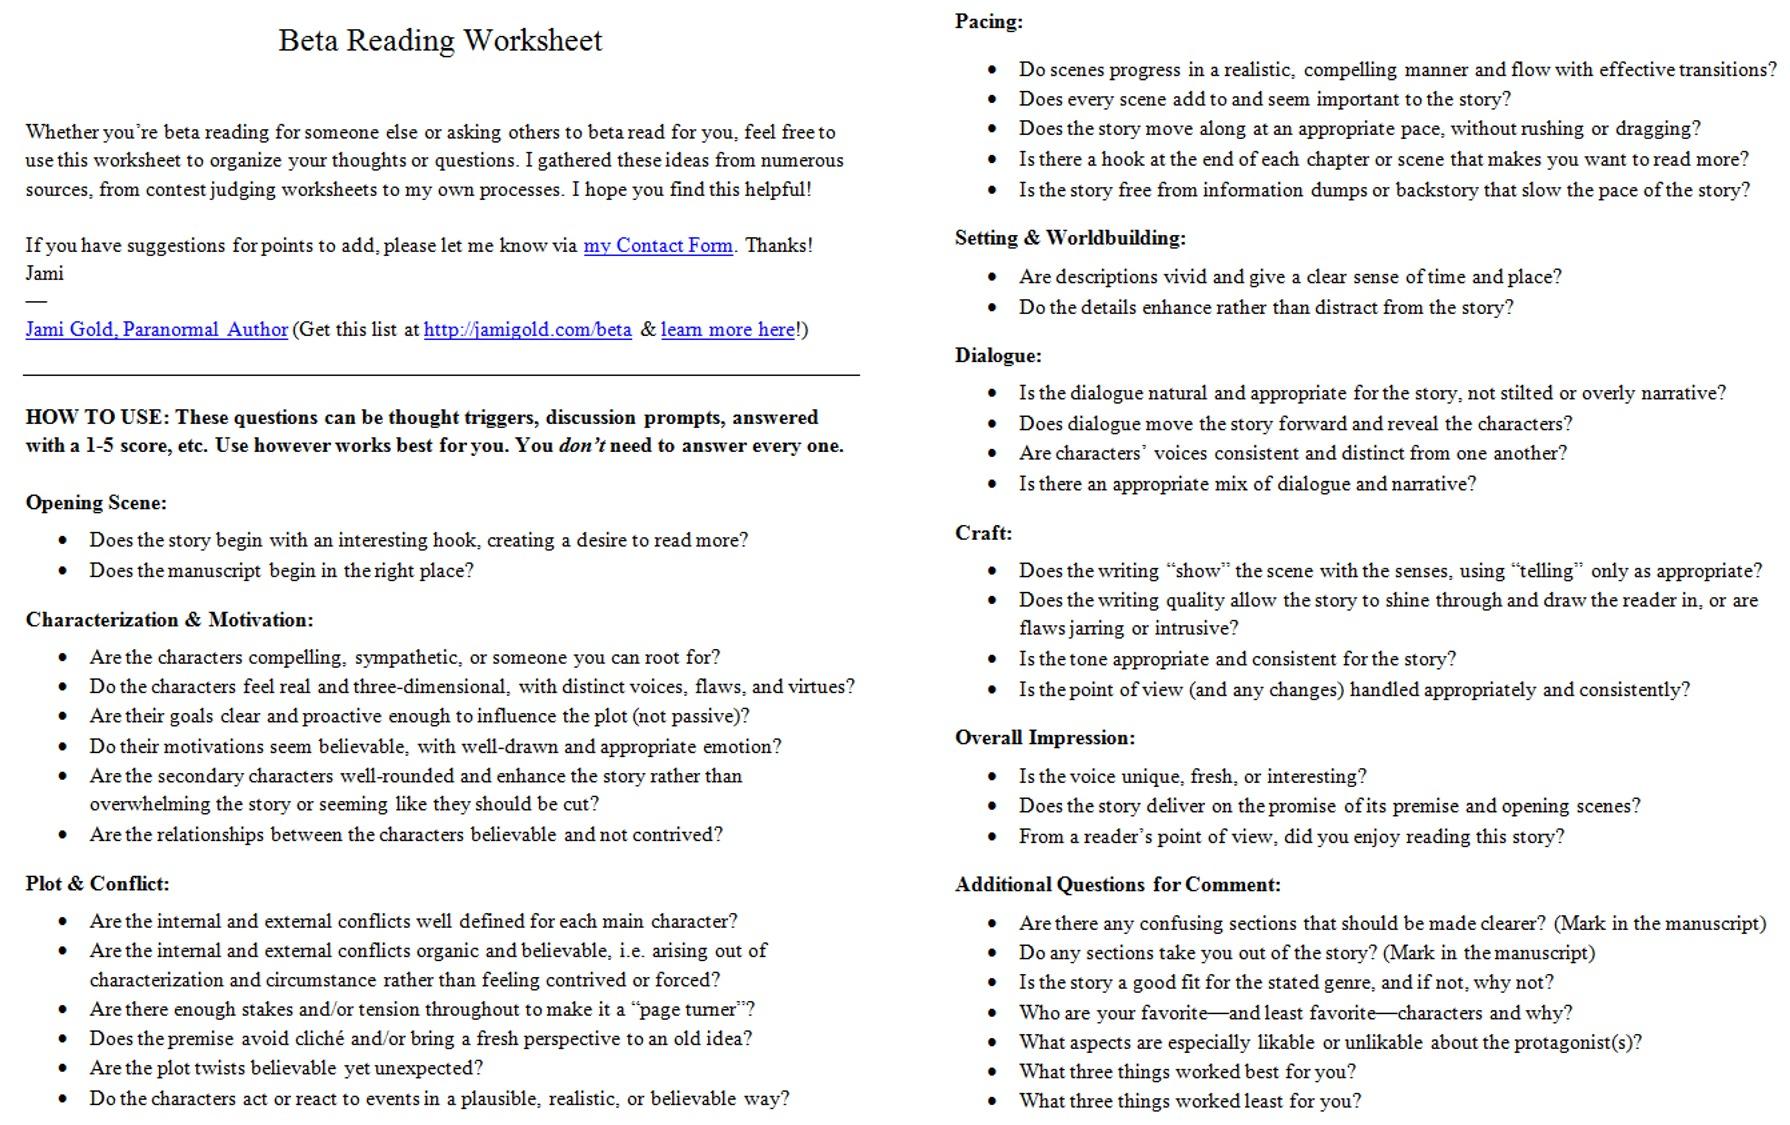 Proatmealus  Marvellous Worksheets For Writers  Jami Gold Paranormal Author With Heavenly Screen Shot Of The Twopage Beta Reading Worksheet With Beautiful Quartiles Worksheet Also Community Service Worksheet In Addition Number Pattern Worksheets For Rd Grade And Places In My Community Worksheet As Well As Parts Of A Computer Worksheet Additionally Esl Writing Worksheets From Jamigoldcom With Proatmealus  Heavenly Worksheets For Writers  Jami Gold Paranormal Author With Beautiful Screen Shot Of The Twopage Beta Reading Worksheet And Marvellous Quartiles Worksheet Also Community Service Worksheet In Addition Number Pattern Worksheets For Rd Grade From Jamigoldcom